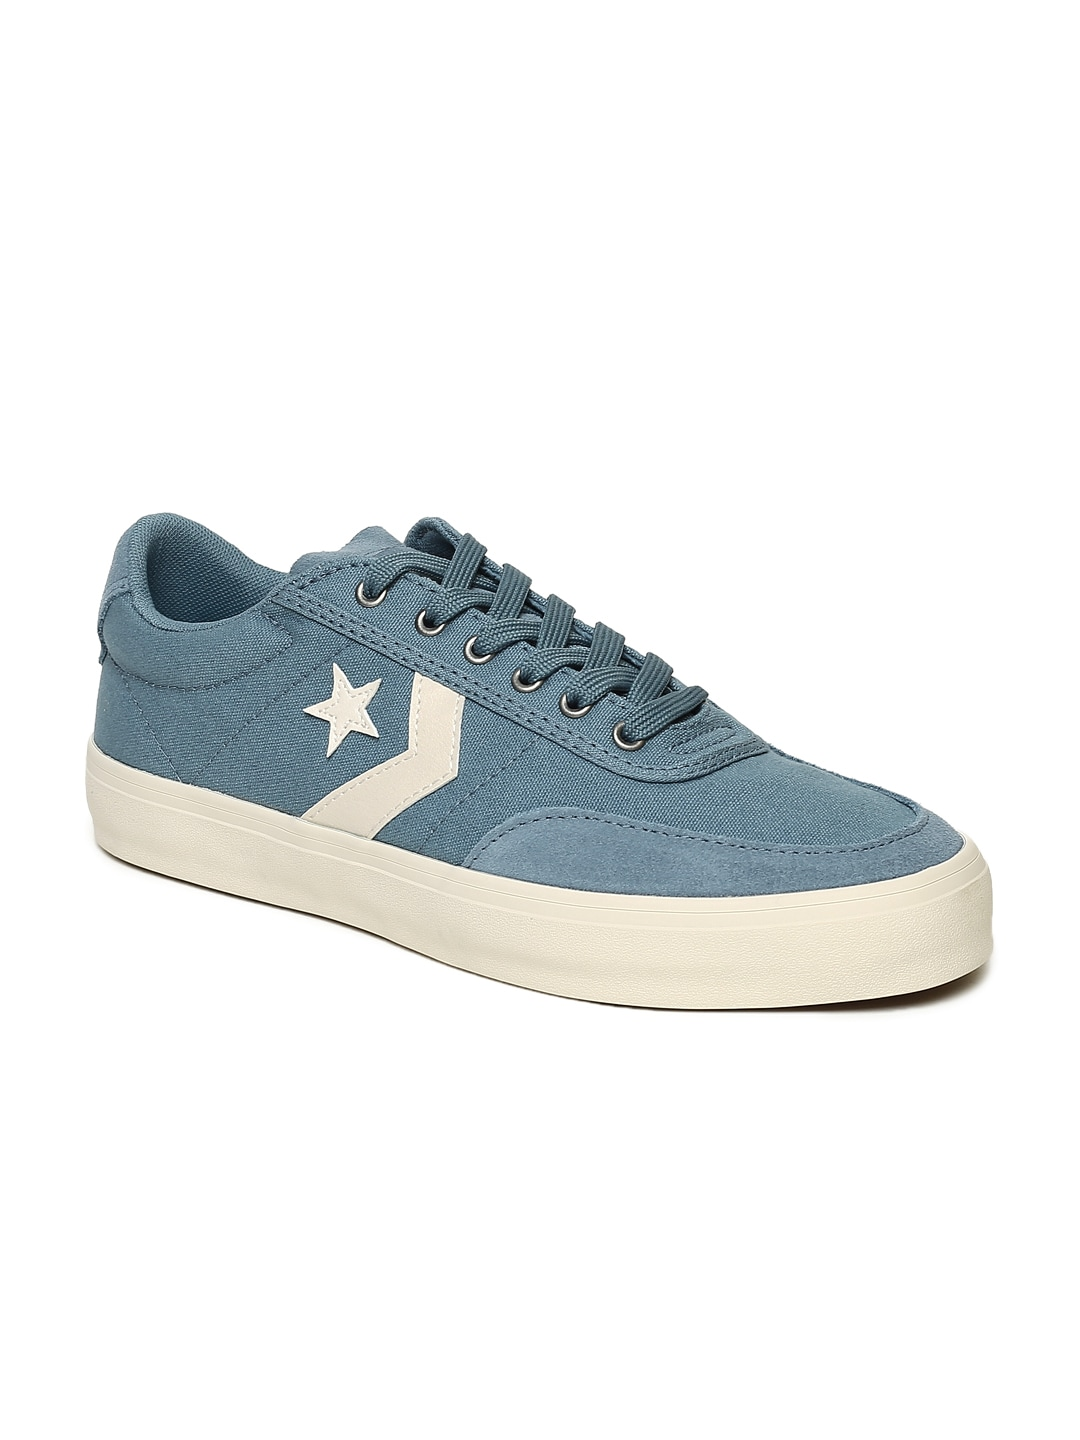 399db721023 Mens Converse Shoes - Buy Mens Converse Shoes online in India